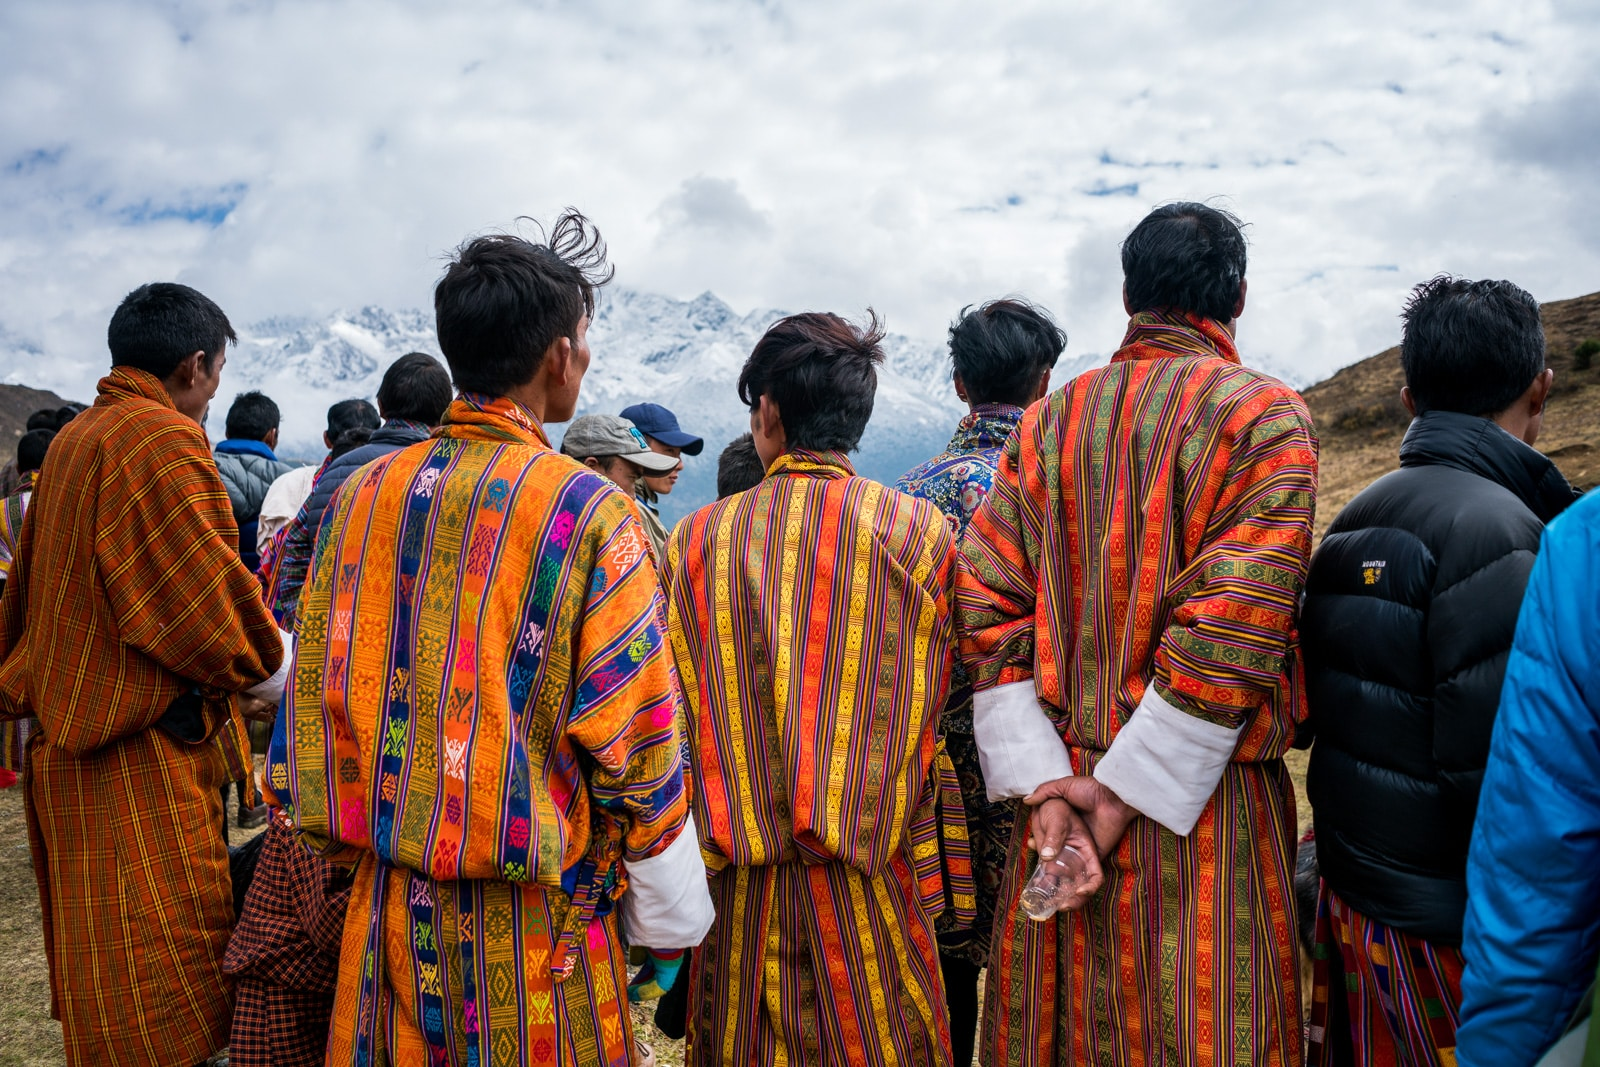 Photos of the 2017 Royal Highlander Festival in Bhutan - Men in colorful traditional Bhutanese gho watching the spectacle - Lost With Purpose travel blog